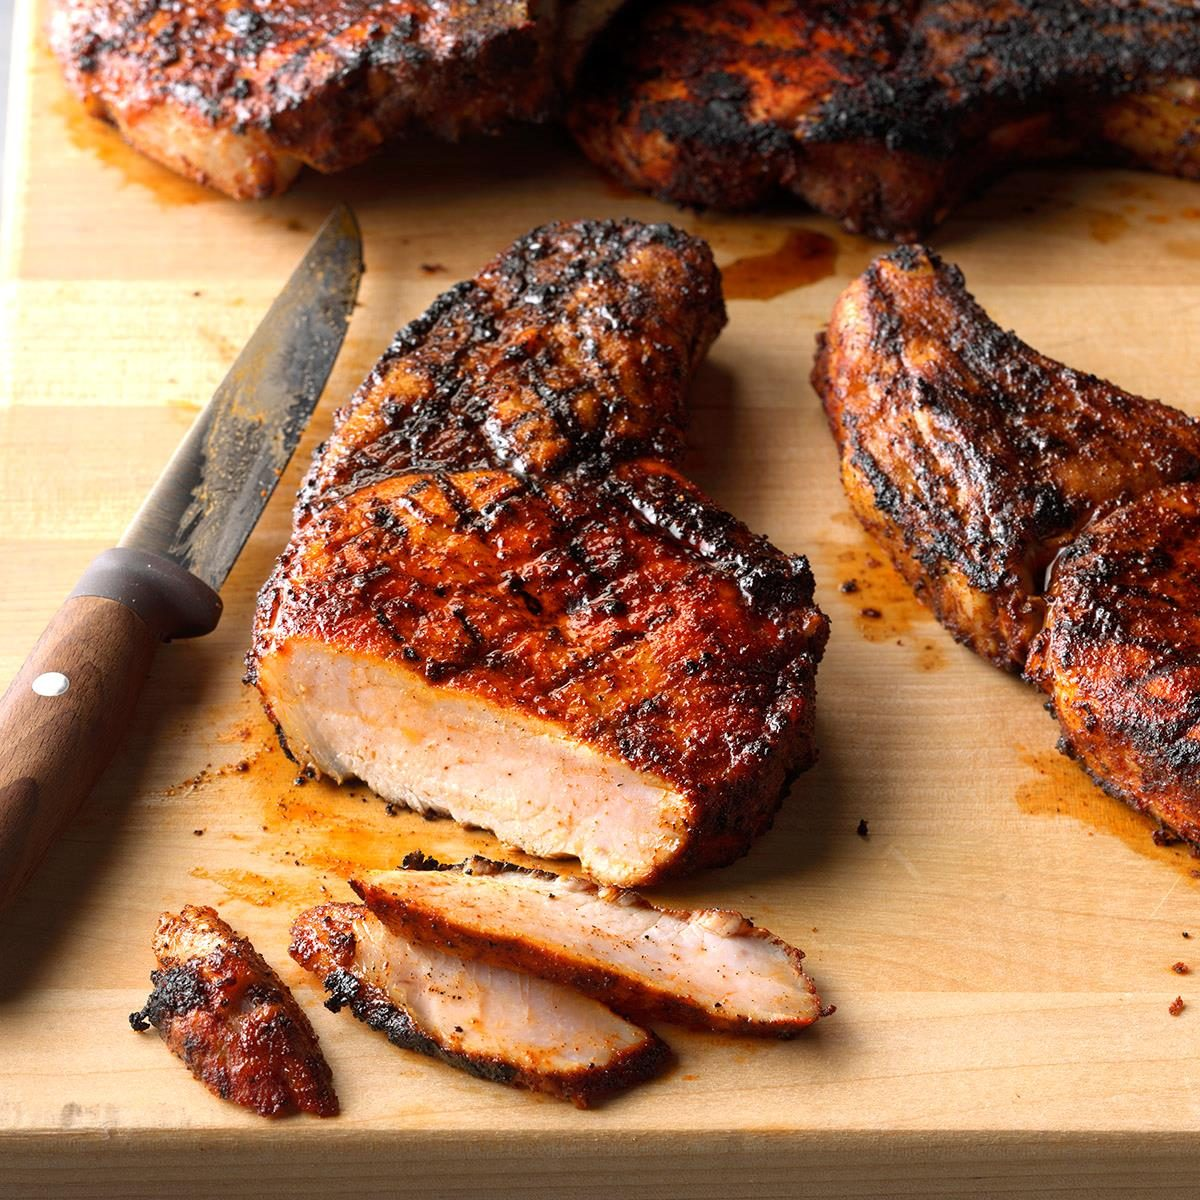 Day 27: Ultimate Grilled Pork Chops